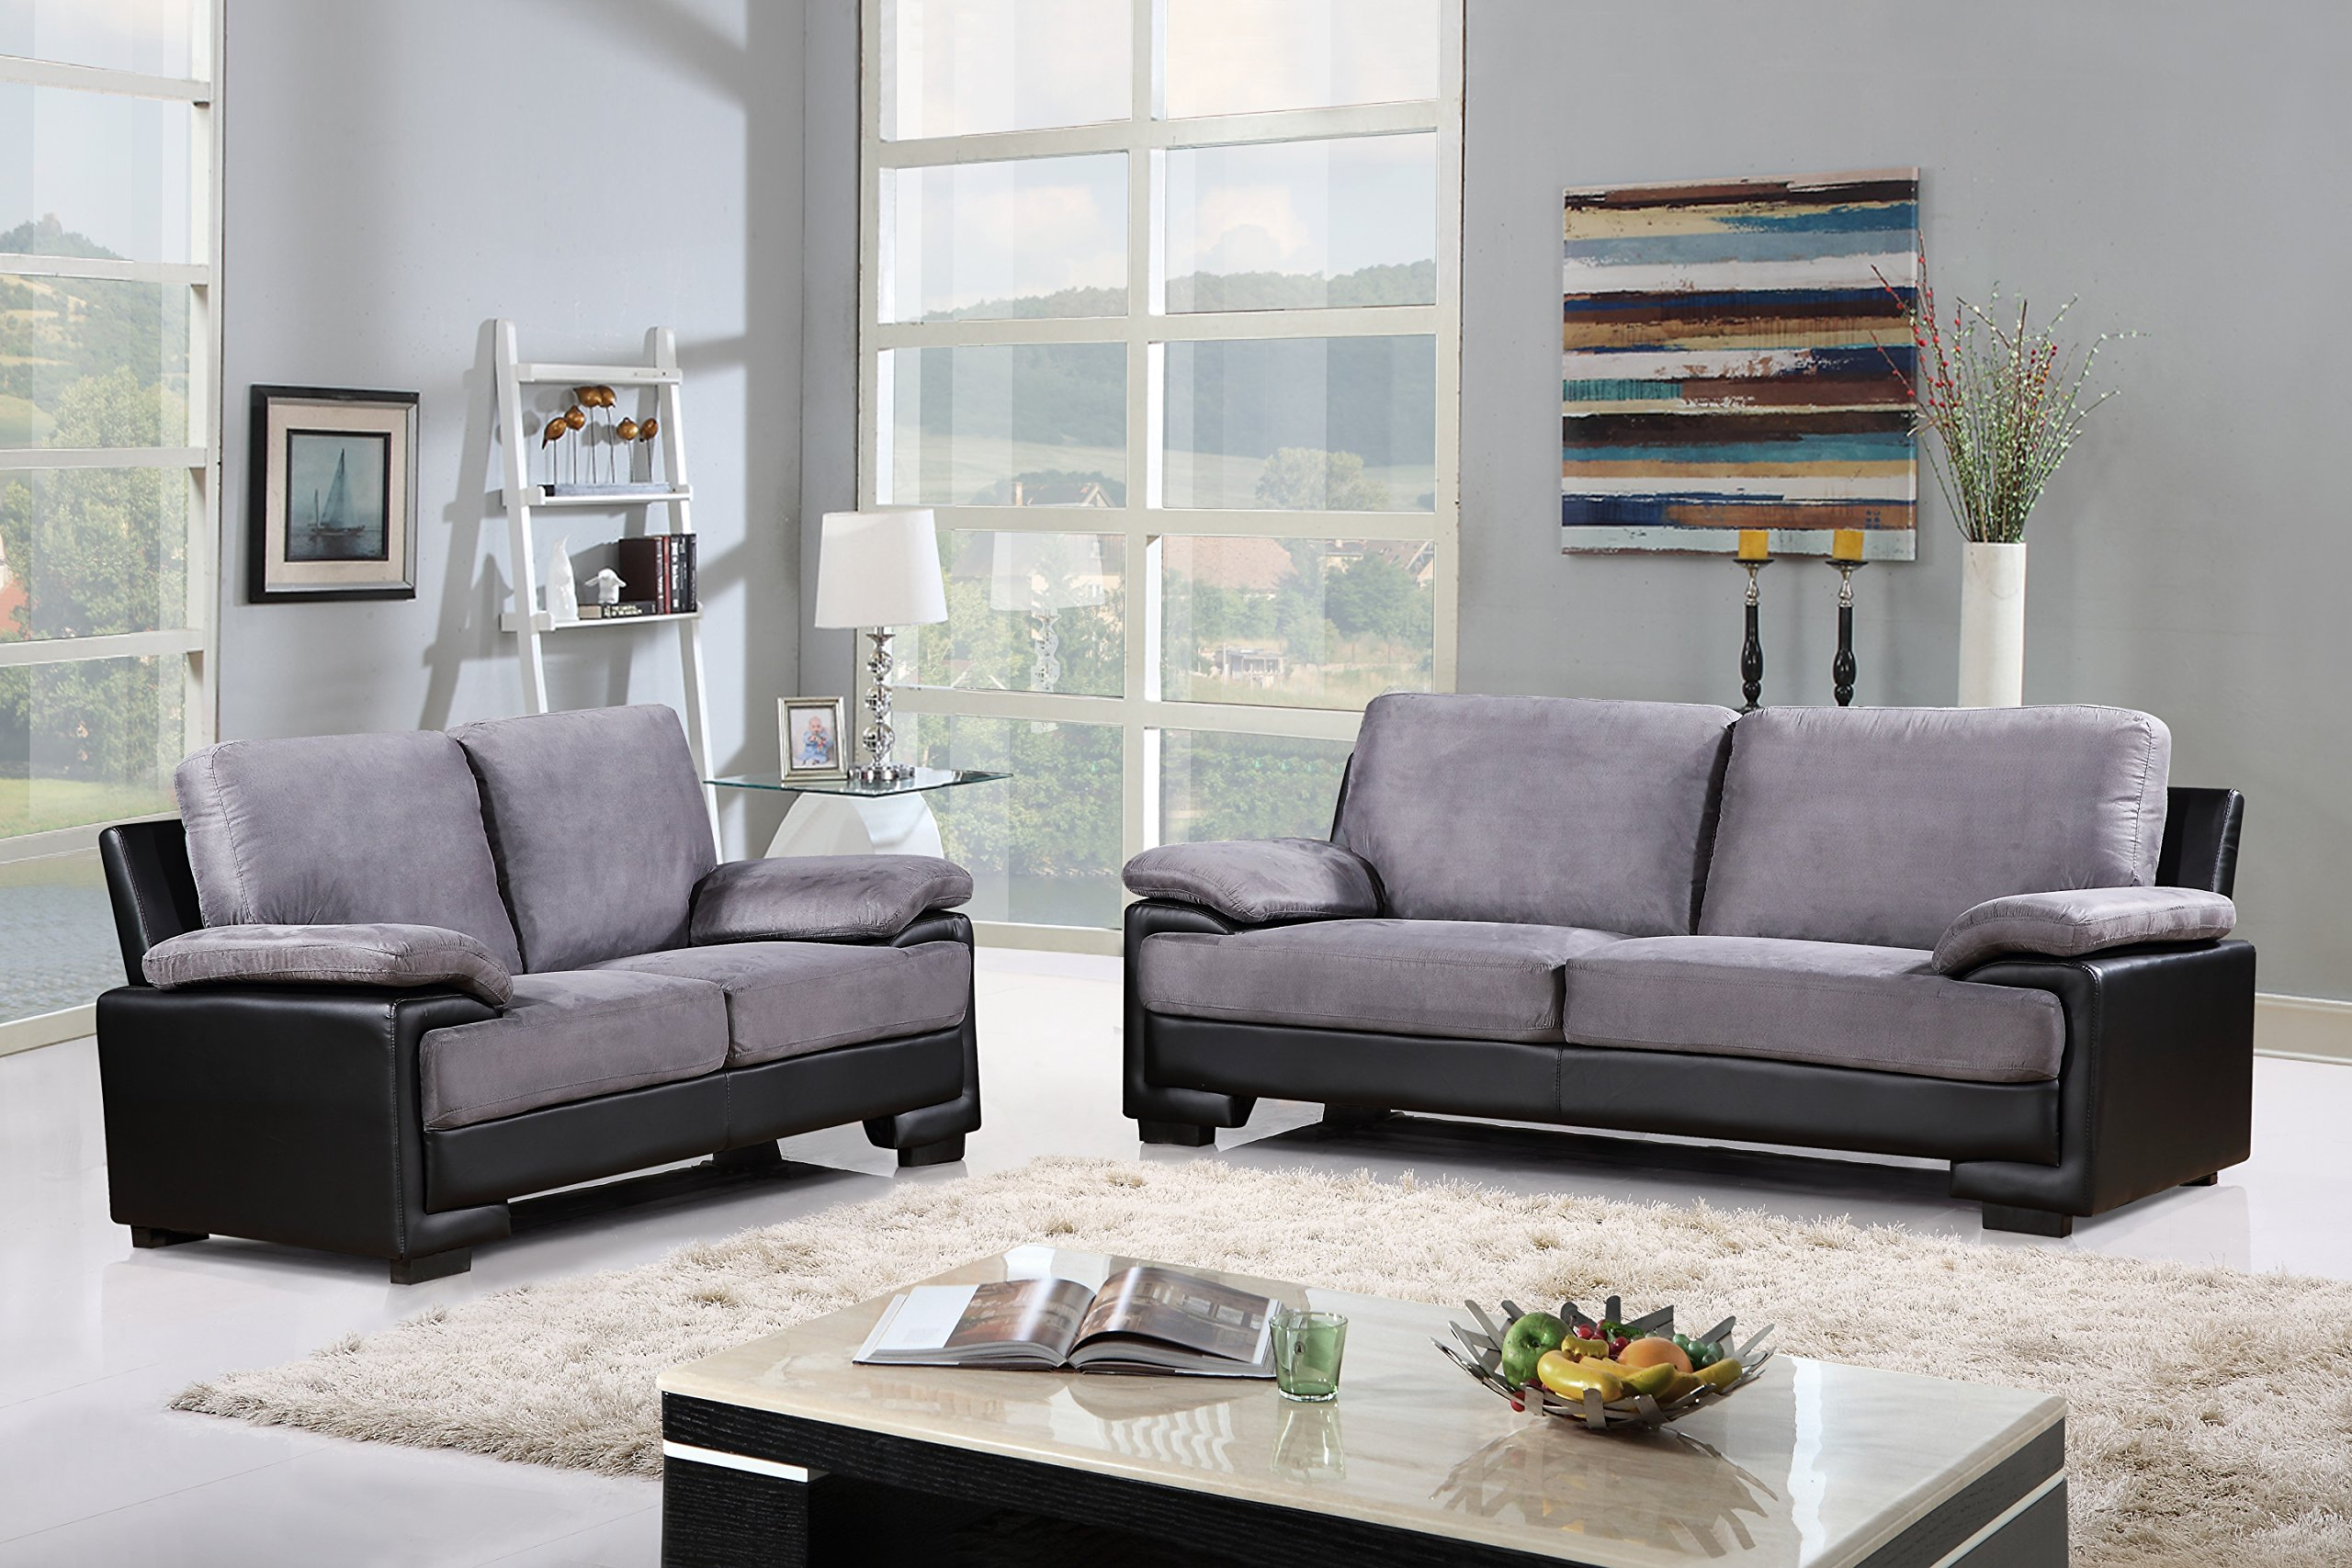 Modern Faux Leather And Brush Microfiber Sofa Loveseat Living Room Furniture Set Black